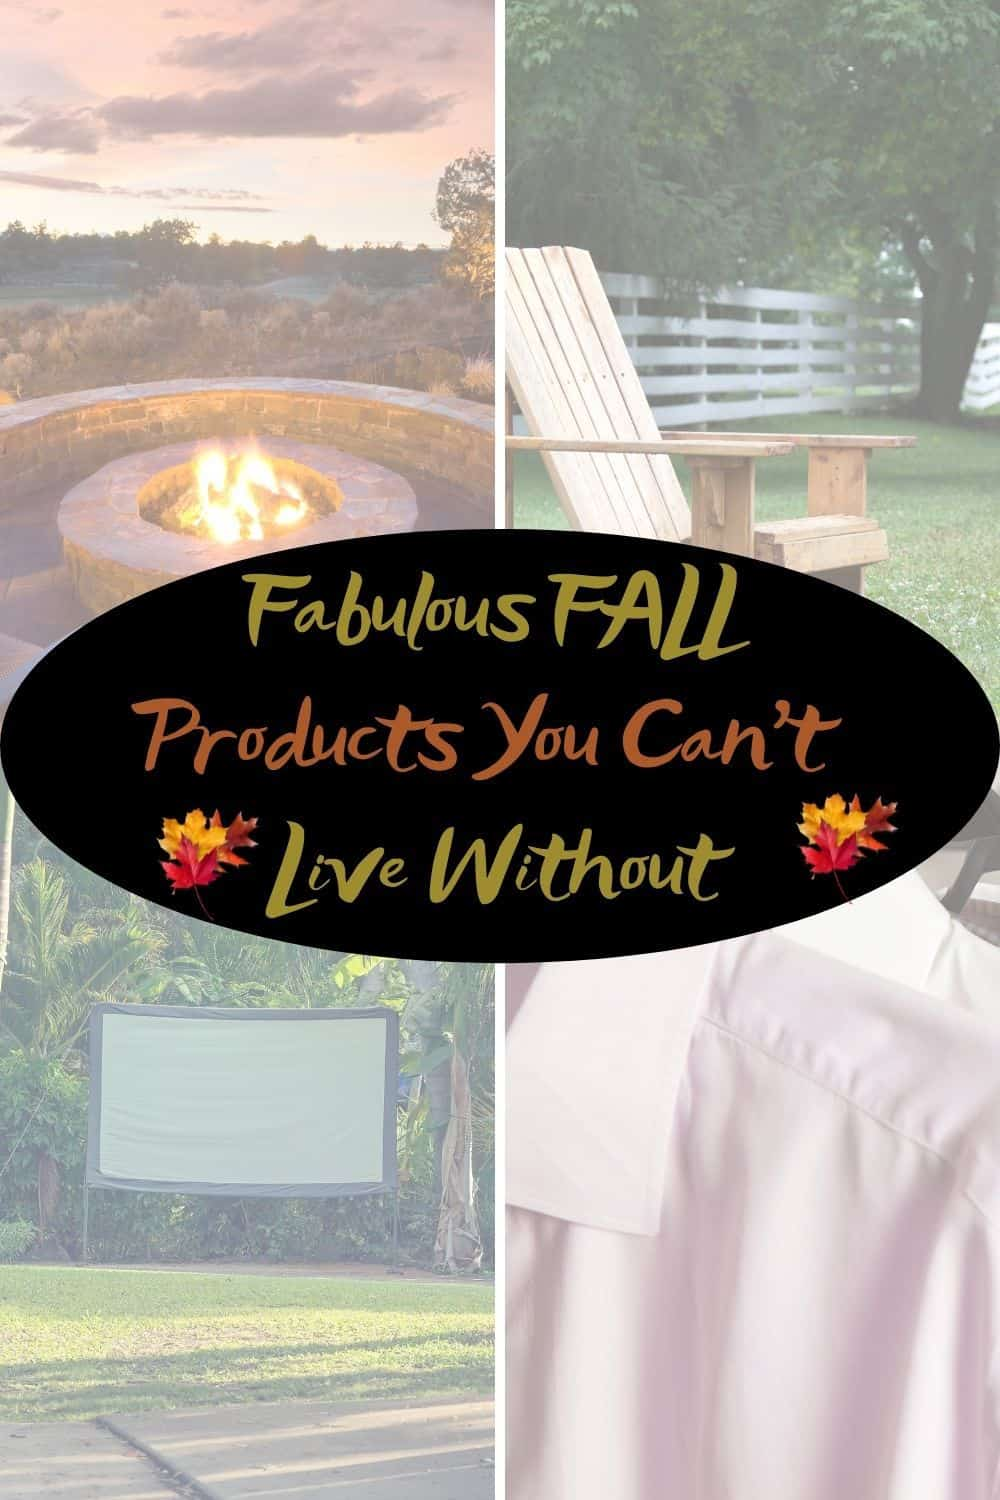 Fabulous FALL Products You Cant Live Without outdoor scenes